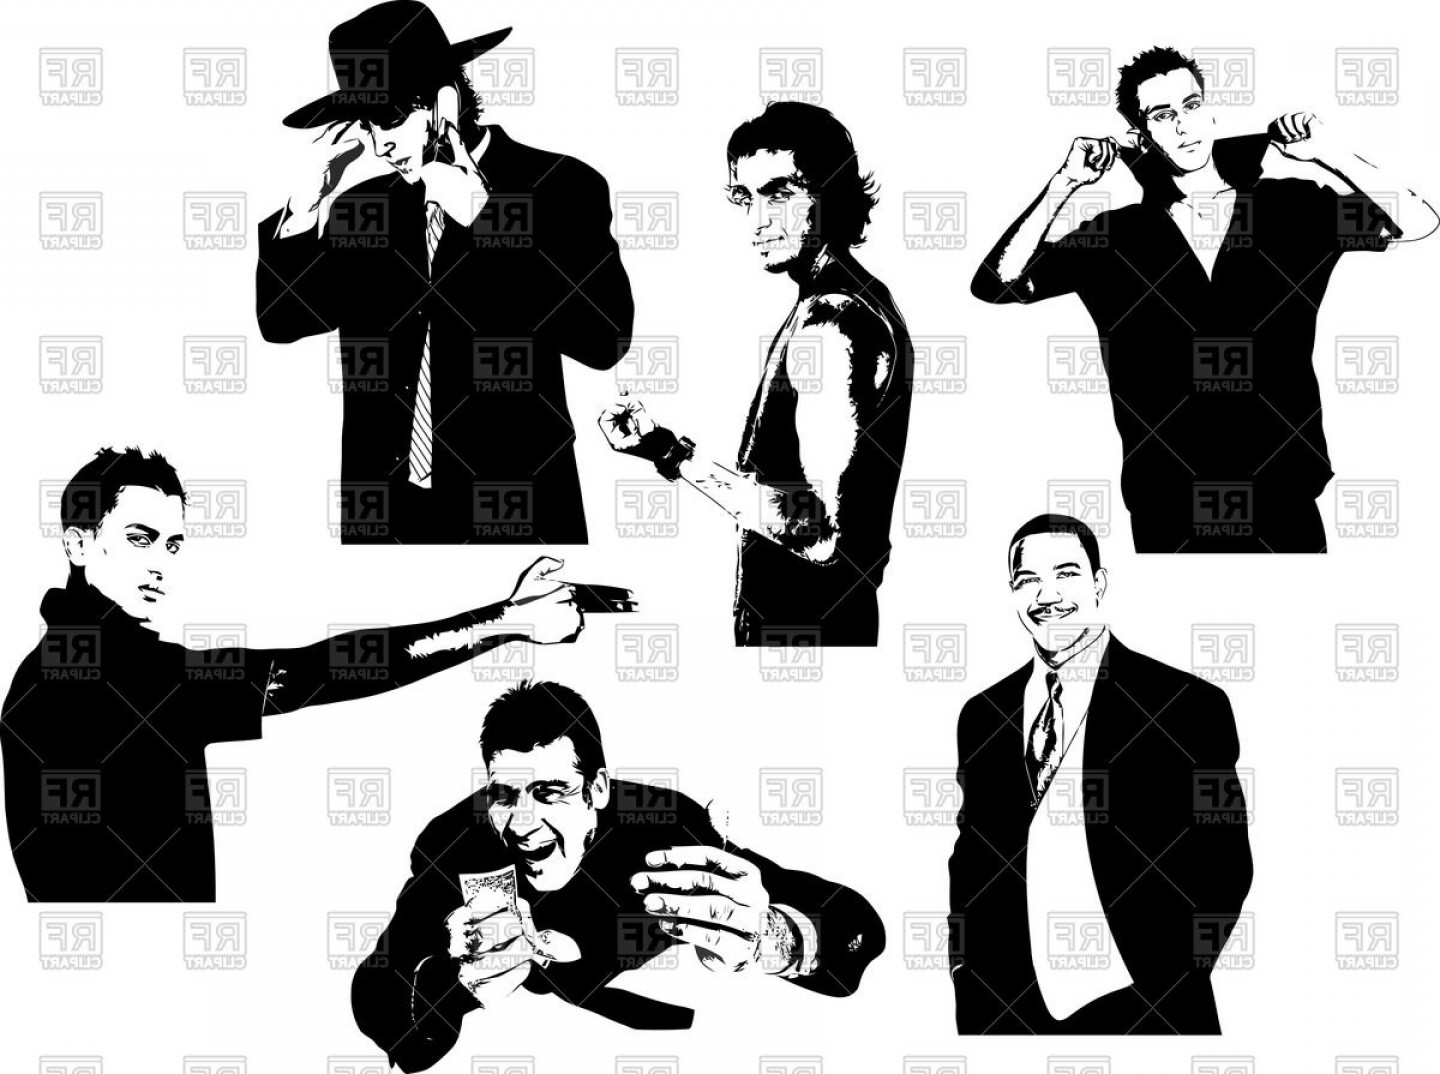 Clipart gangsters graphic freeuse download Silhouettes Of Handsome Men Bandits And Gangsters Vector Clipart ... graphic freeuse download